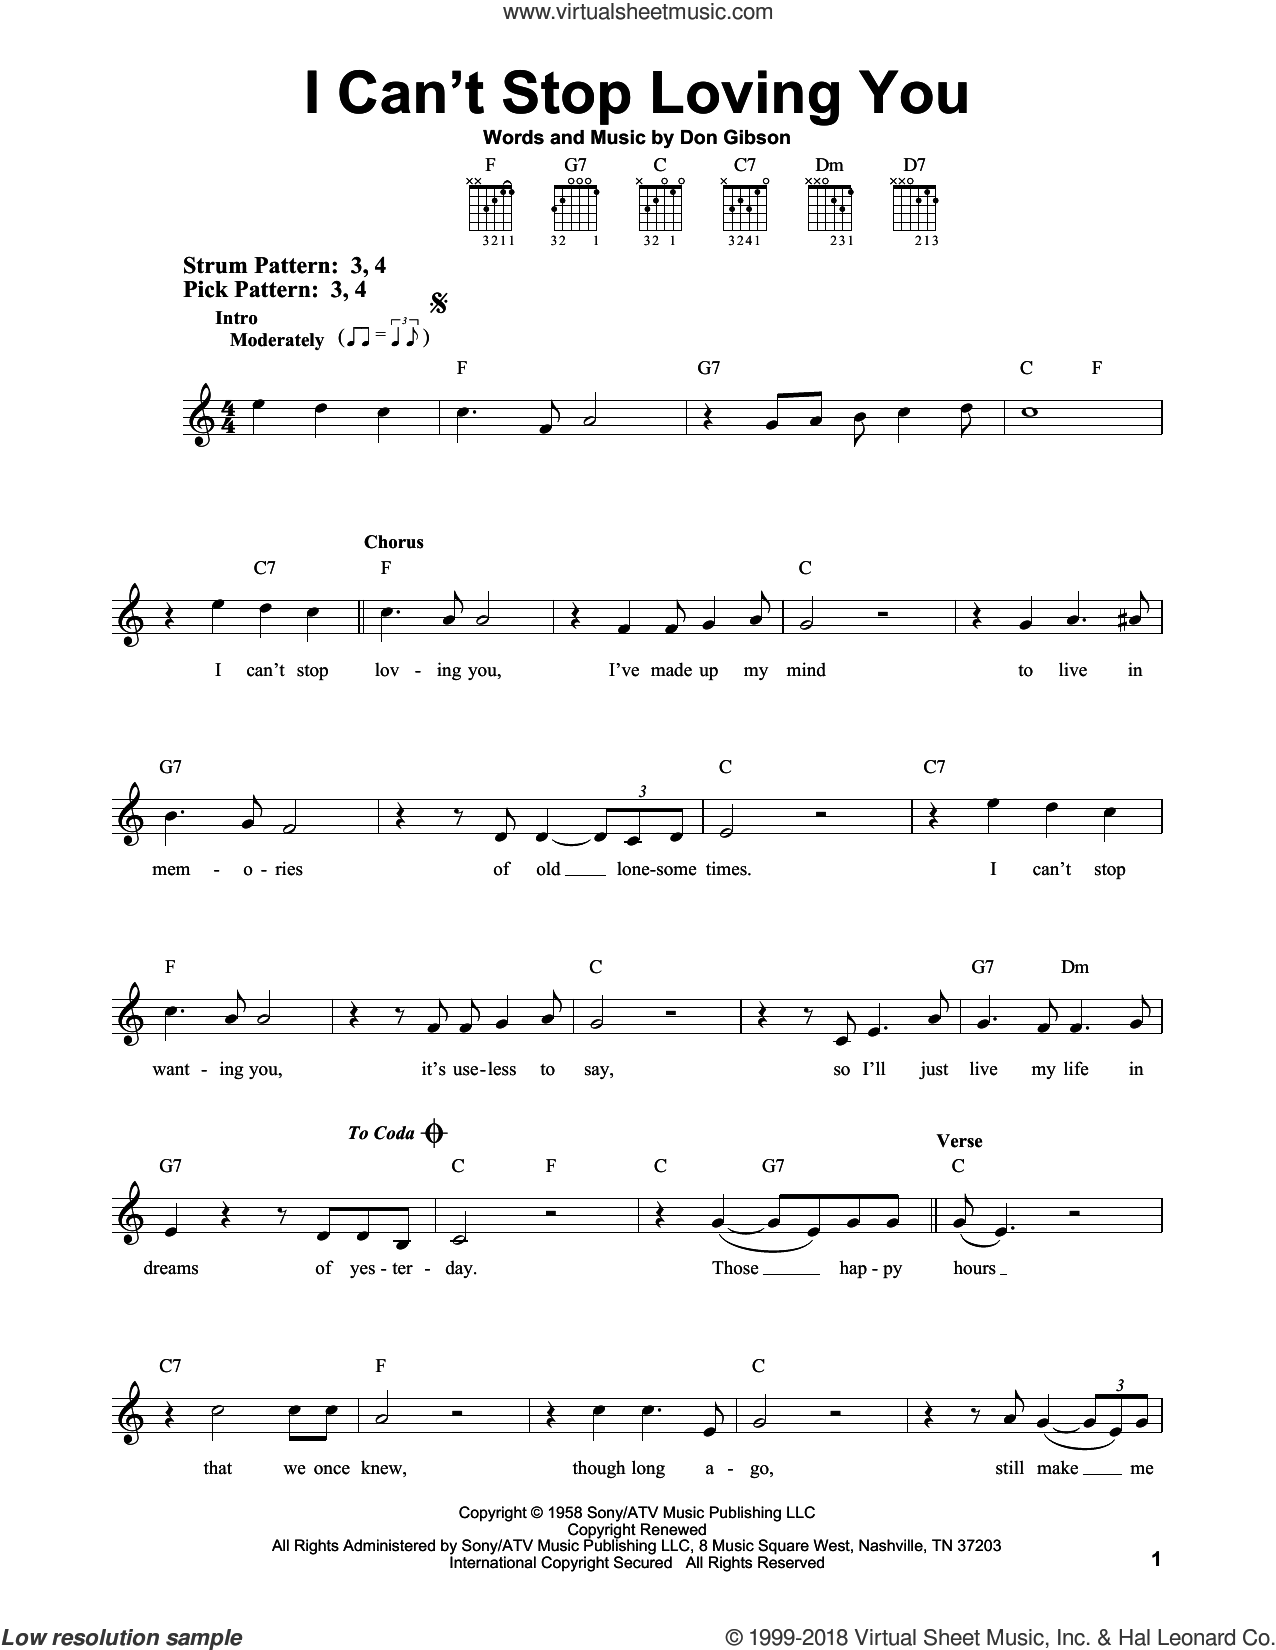 I Can't Stop Loving You sheet music for guitar solo (chords) by Don Gibson